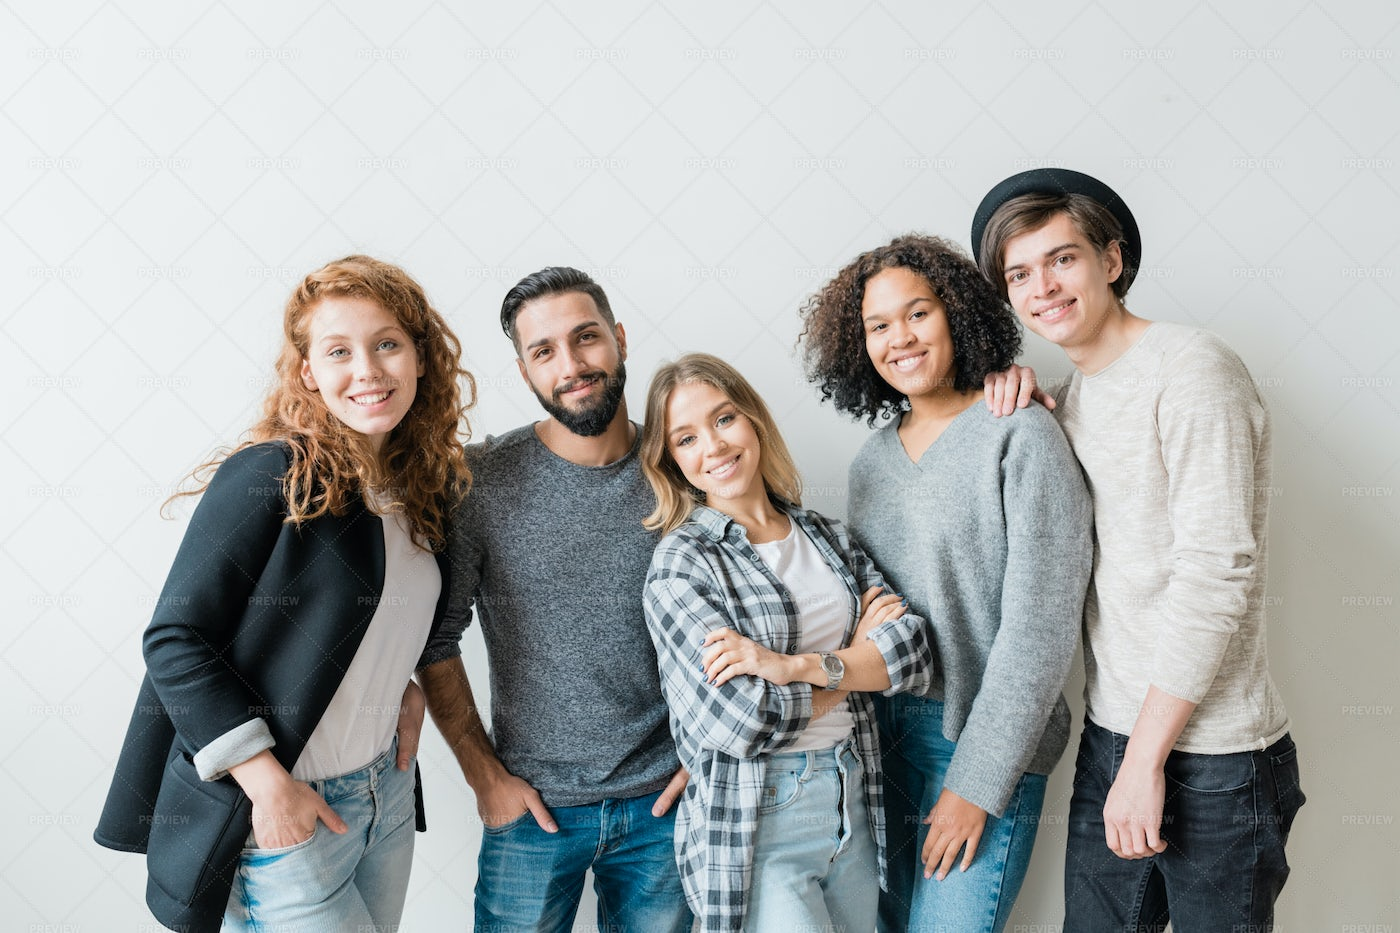 Smiling Guys And Girls In...: Stock Photos